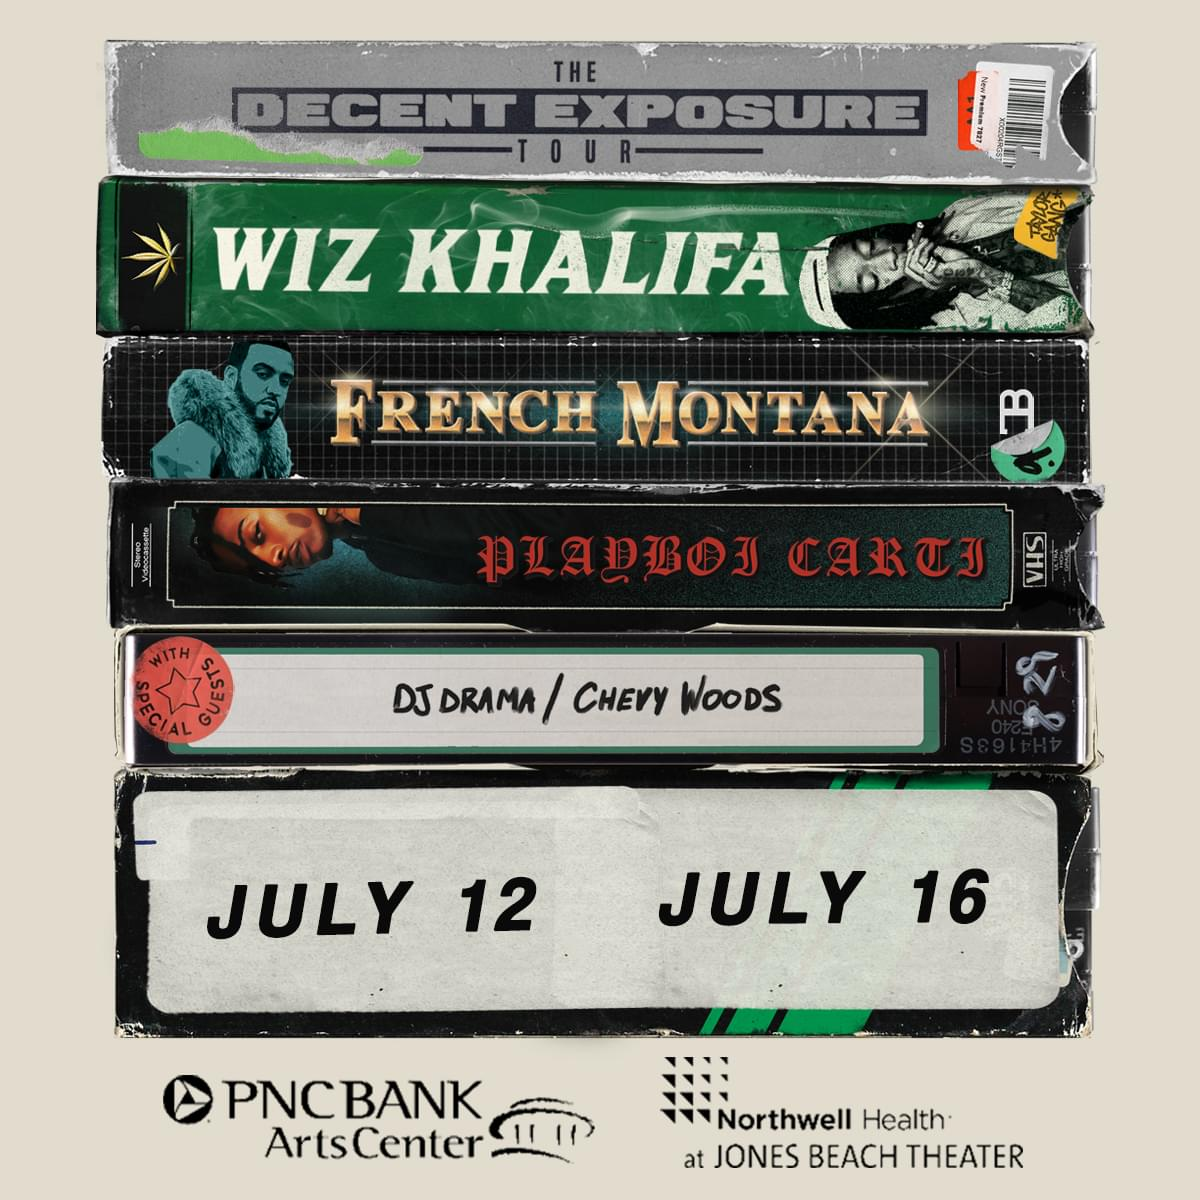 Win Tickets to Wiz Khalifa's 'The Decent Exposure' Tour!